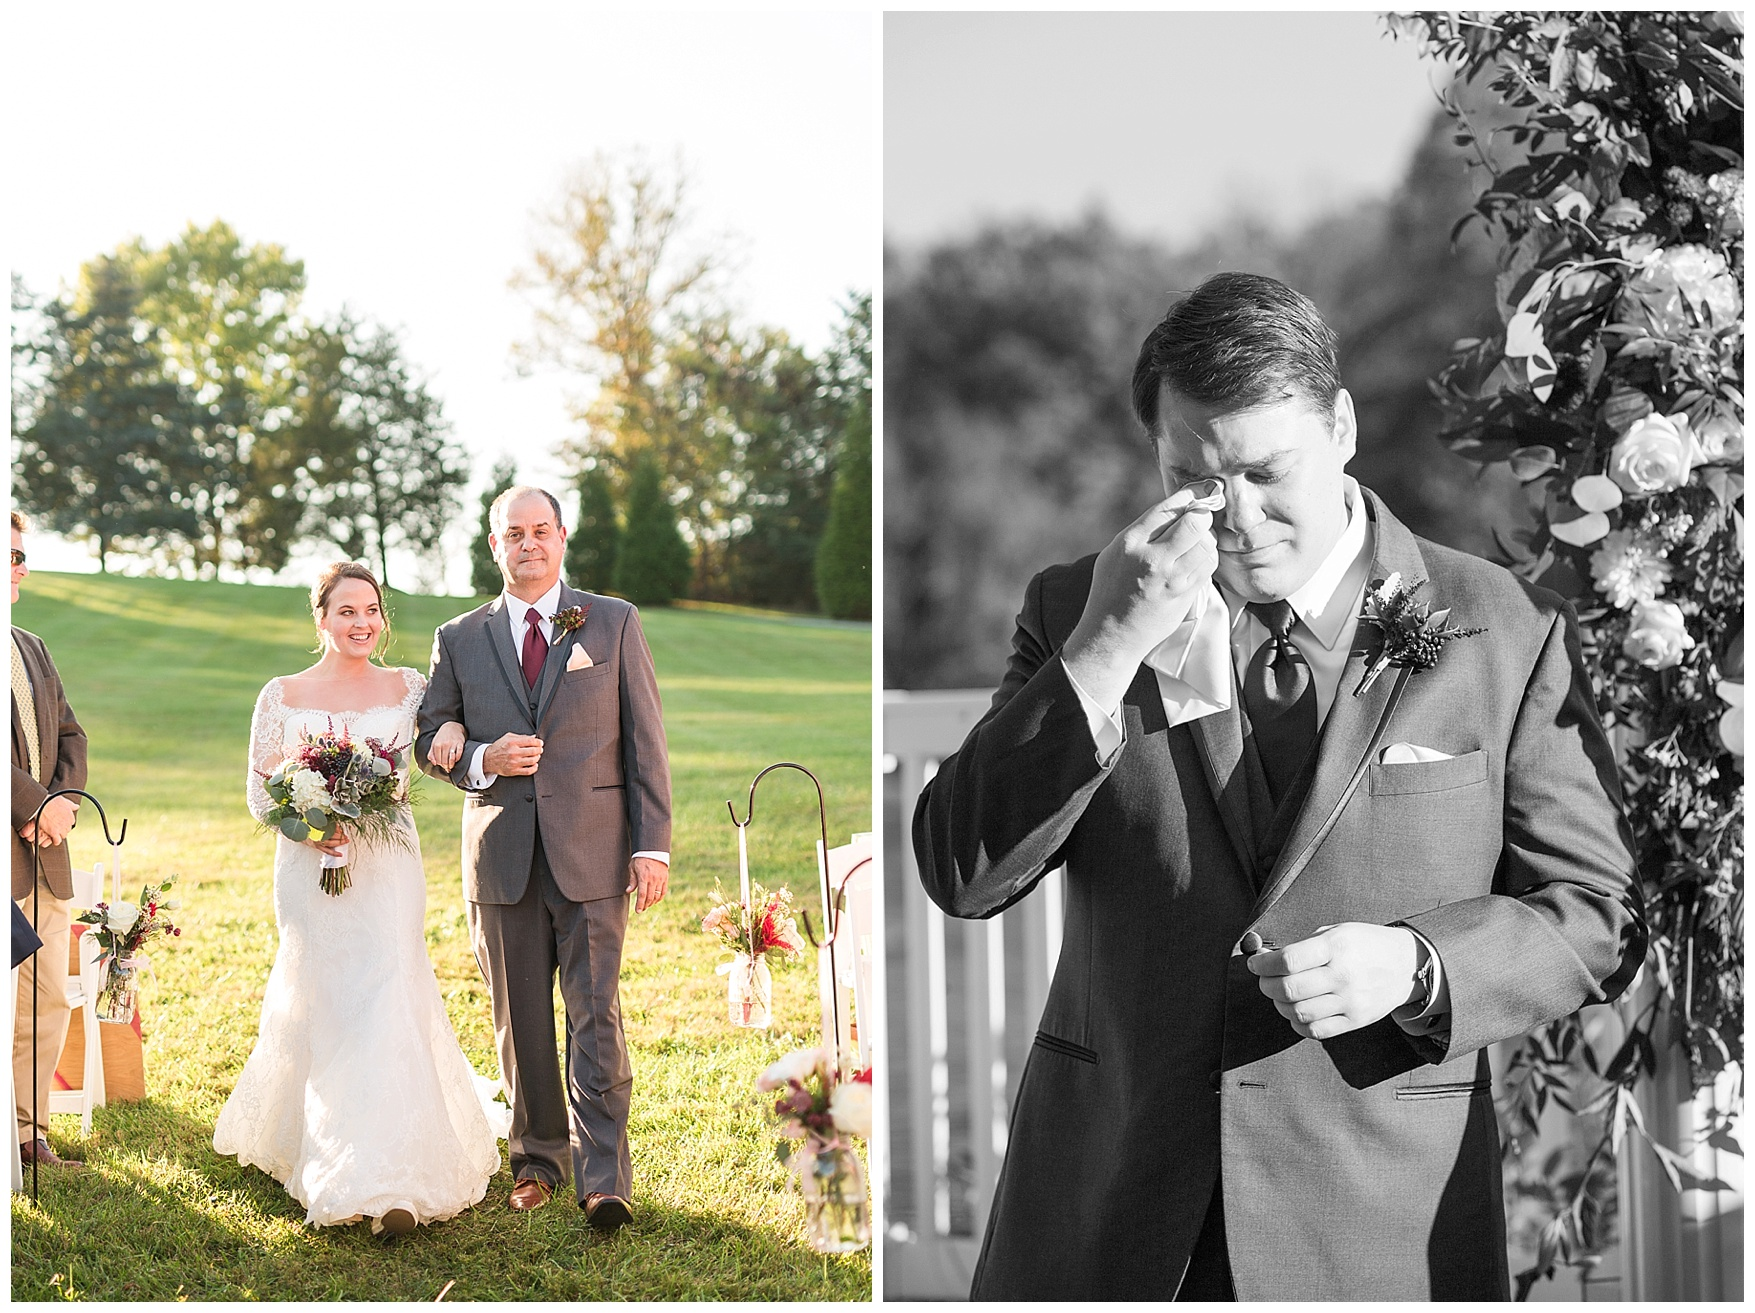 Charlottesville and Lynchburg Wedding Photographer || Fall Trivium Estate Wedding || Ashley Eiban Photography || www.ashleyeiban.com